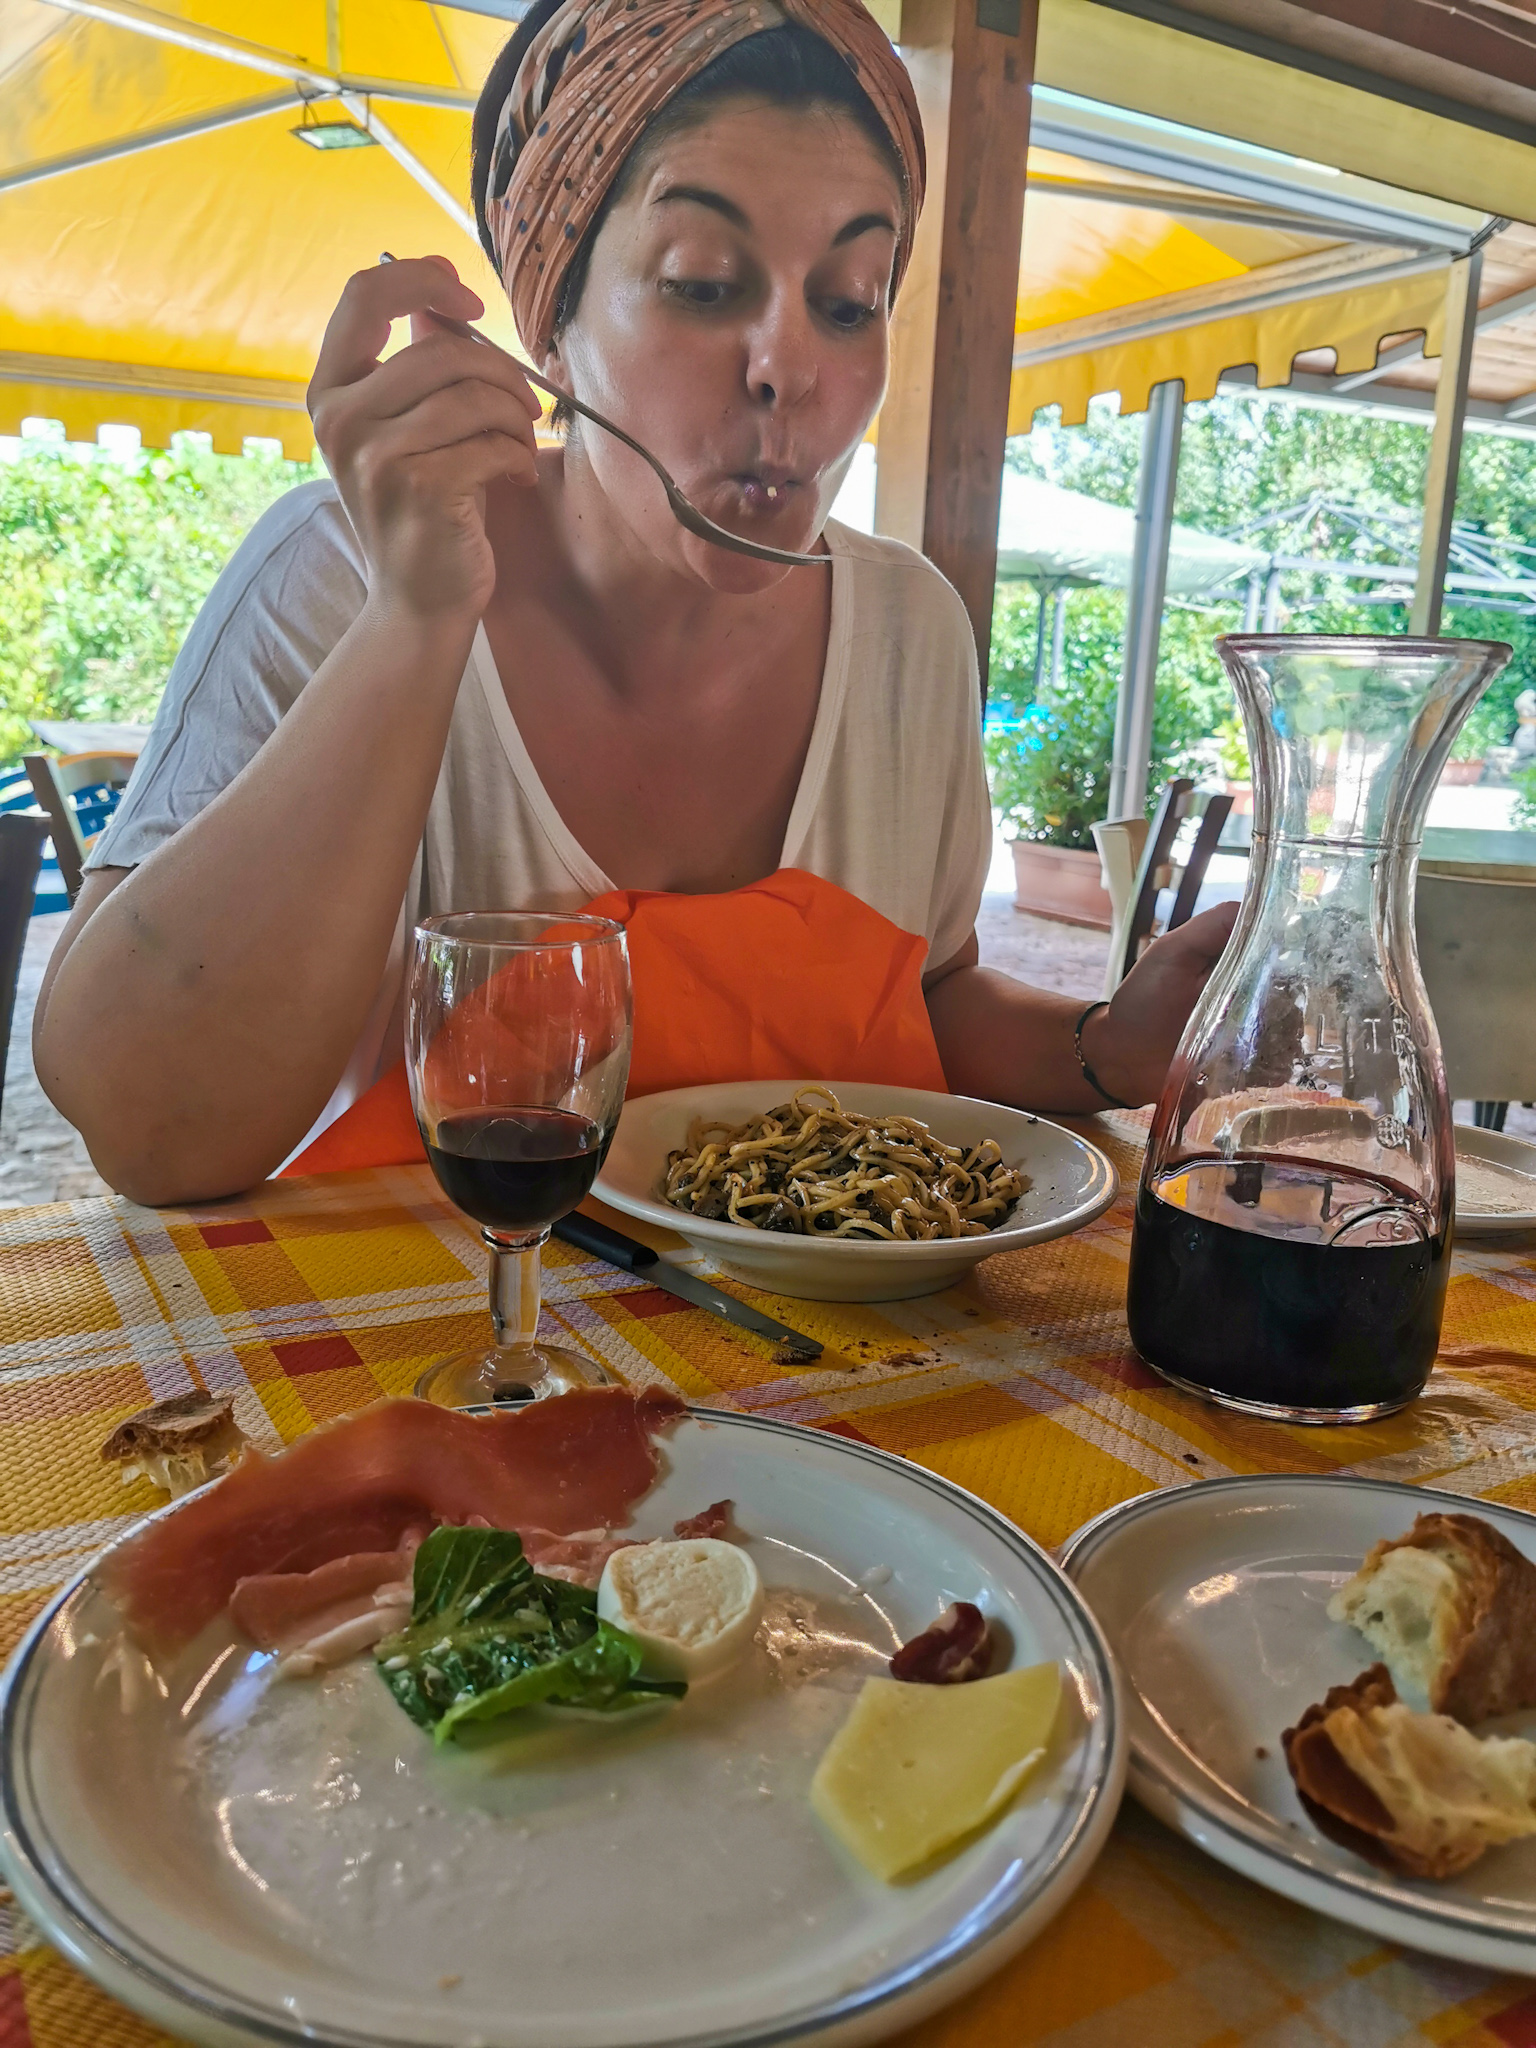 Eating pasta with mushrooms and truffles in Altilia, in the region of Molise